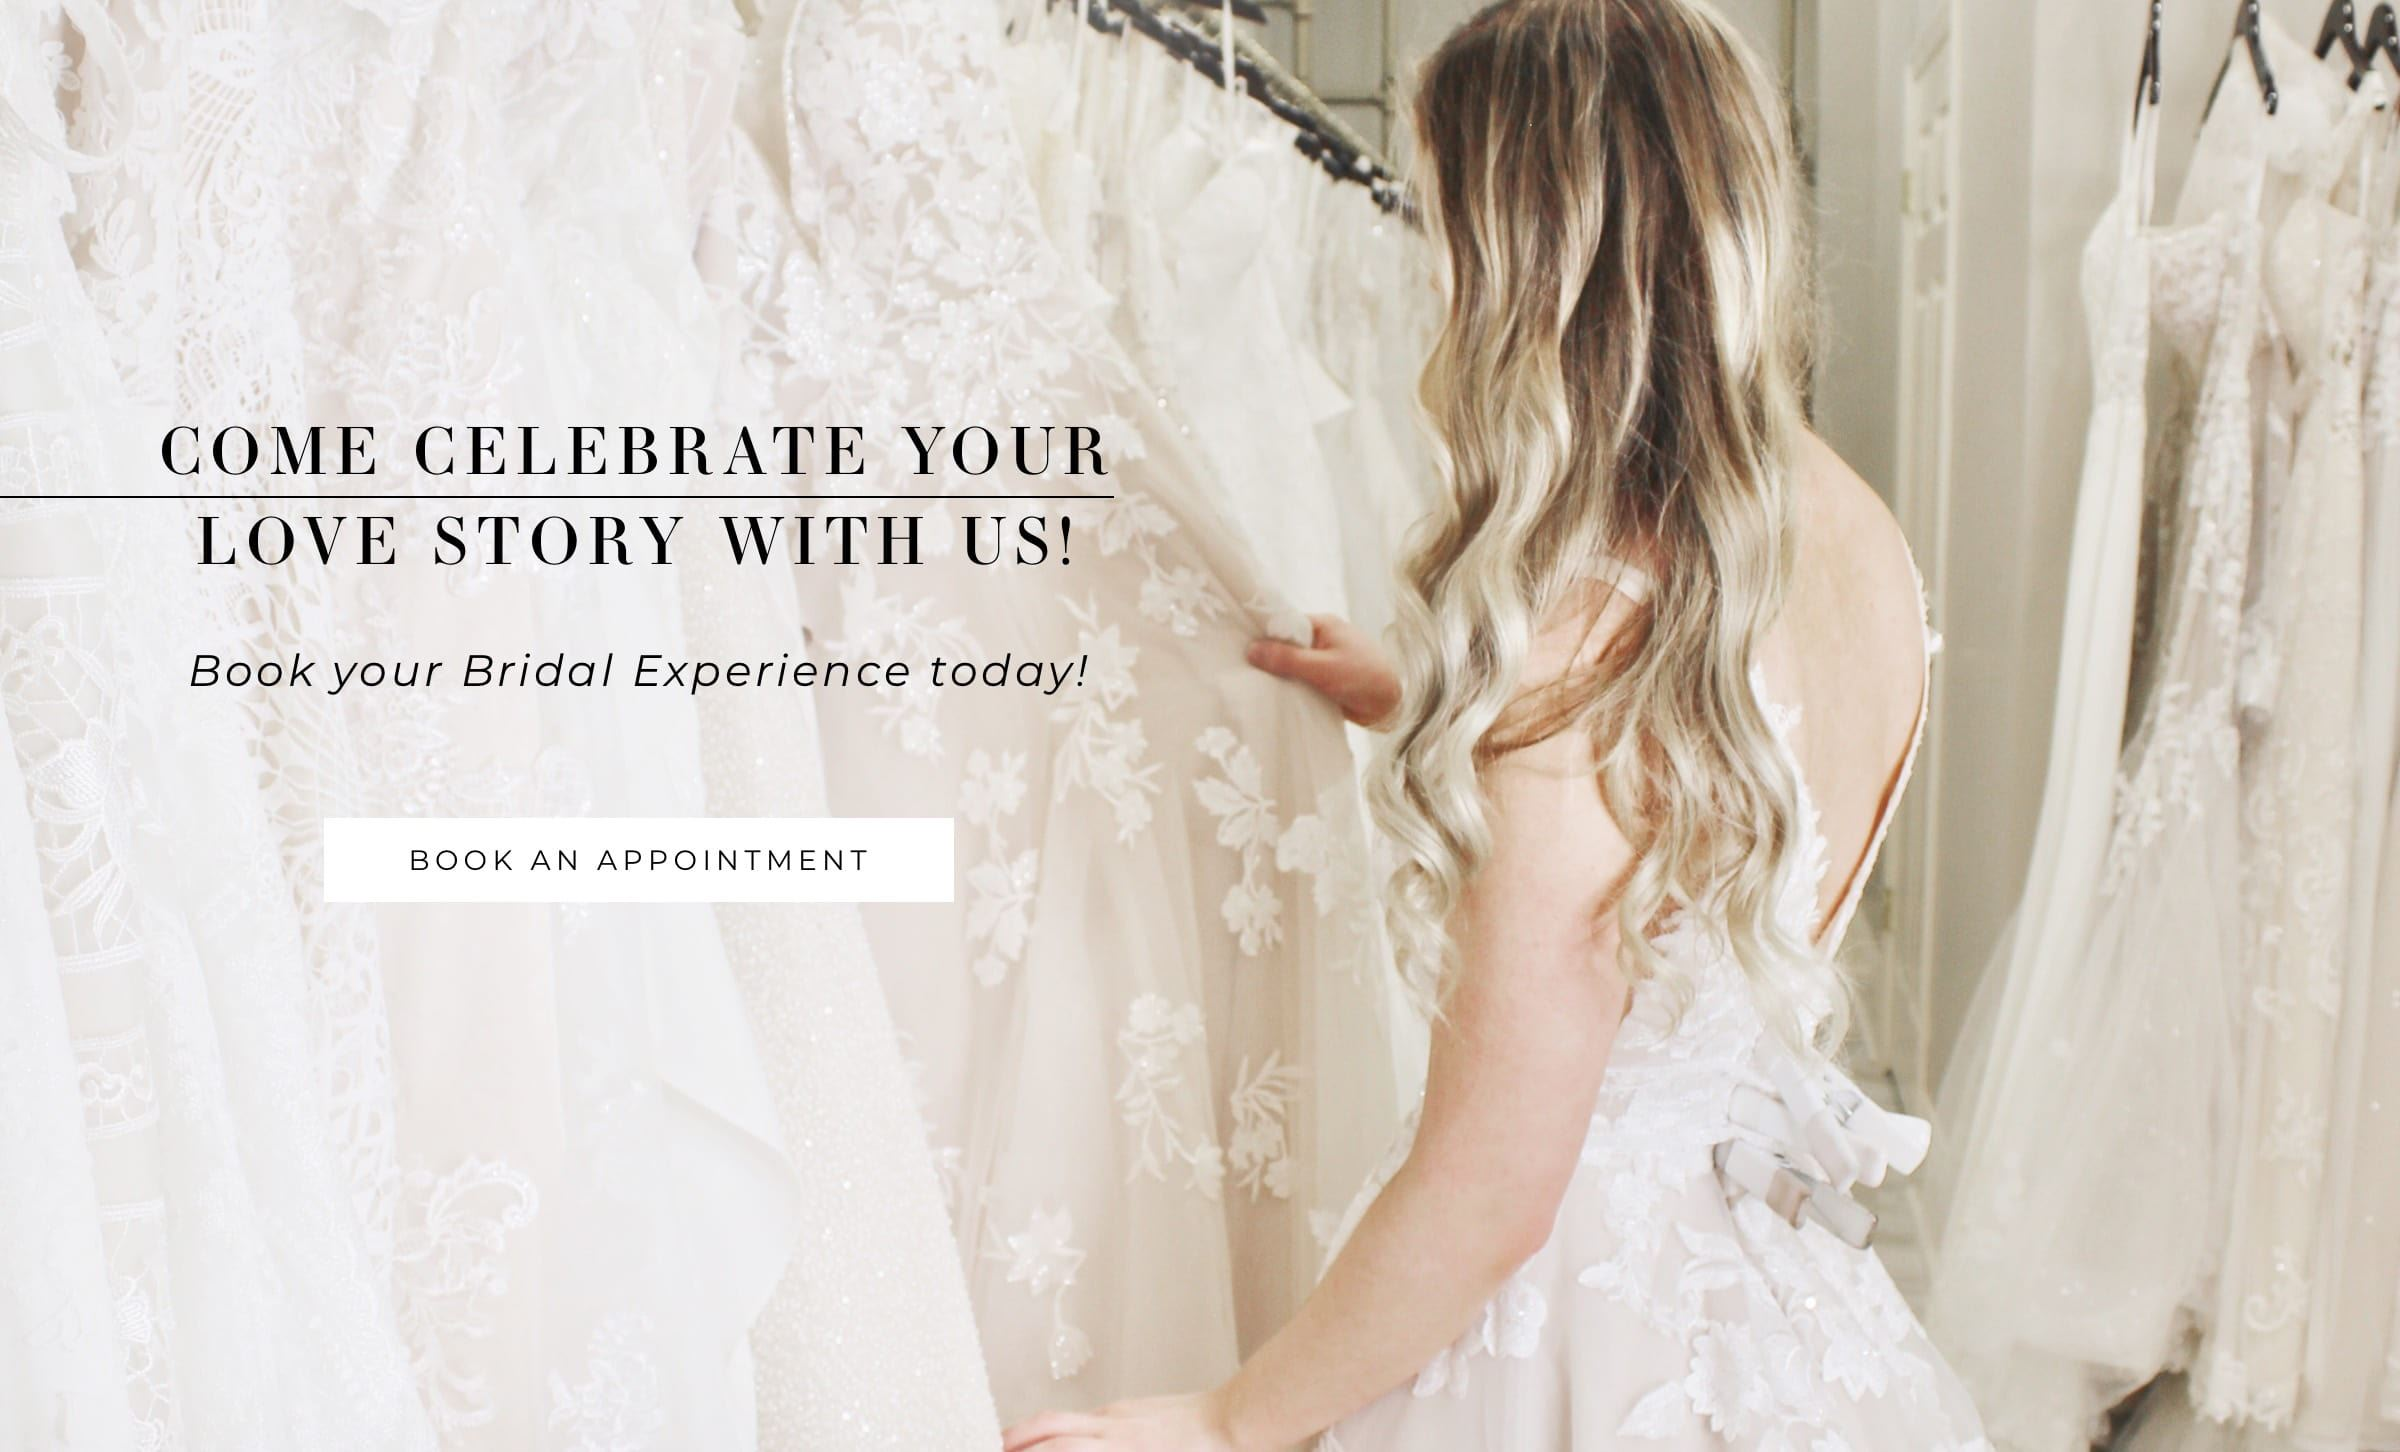 Bride browsing through wedding dresses at Amanda's Touch shown on banner